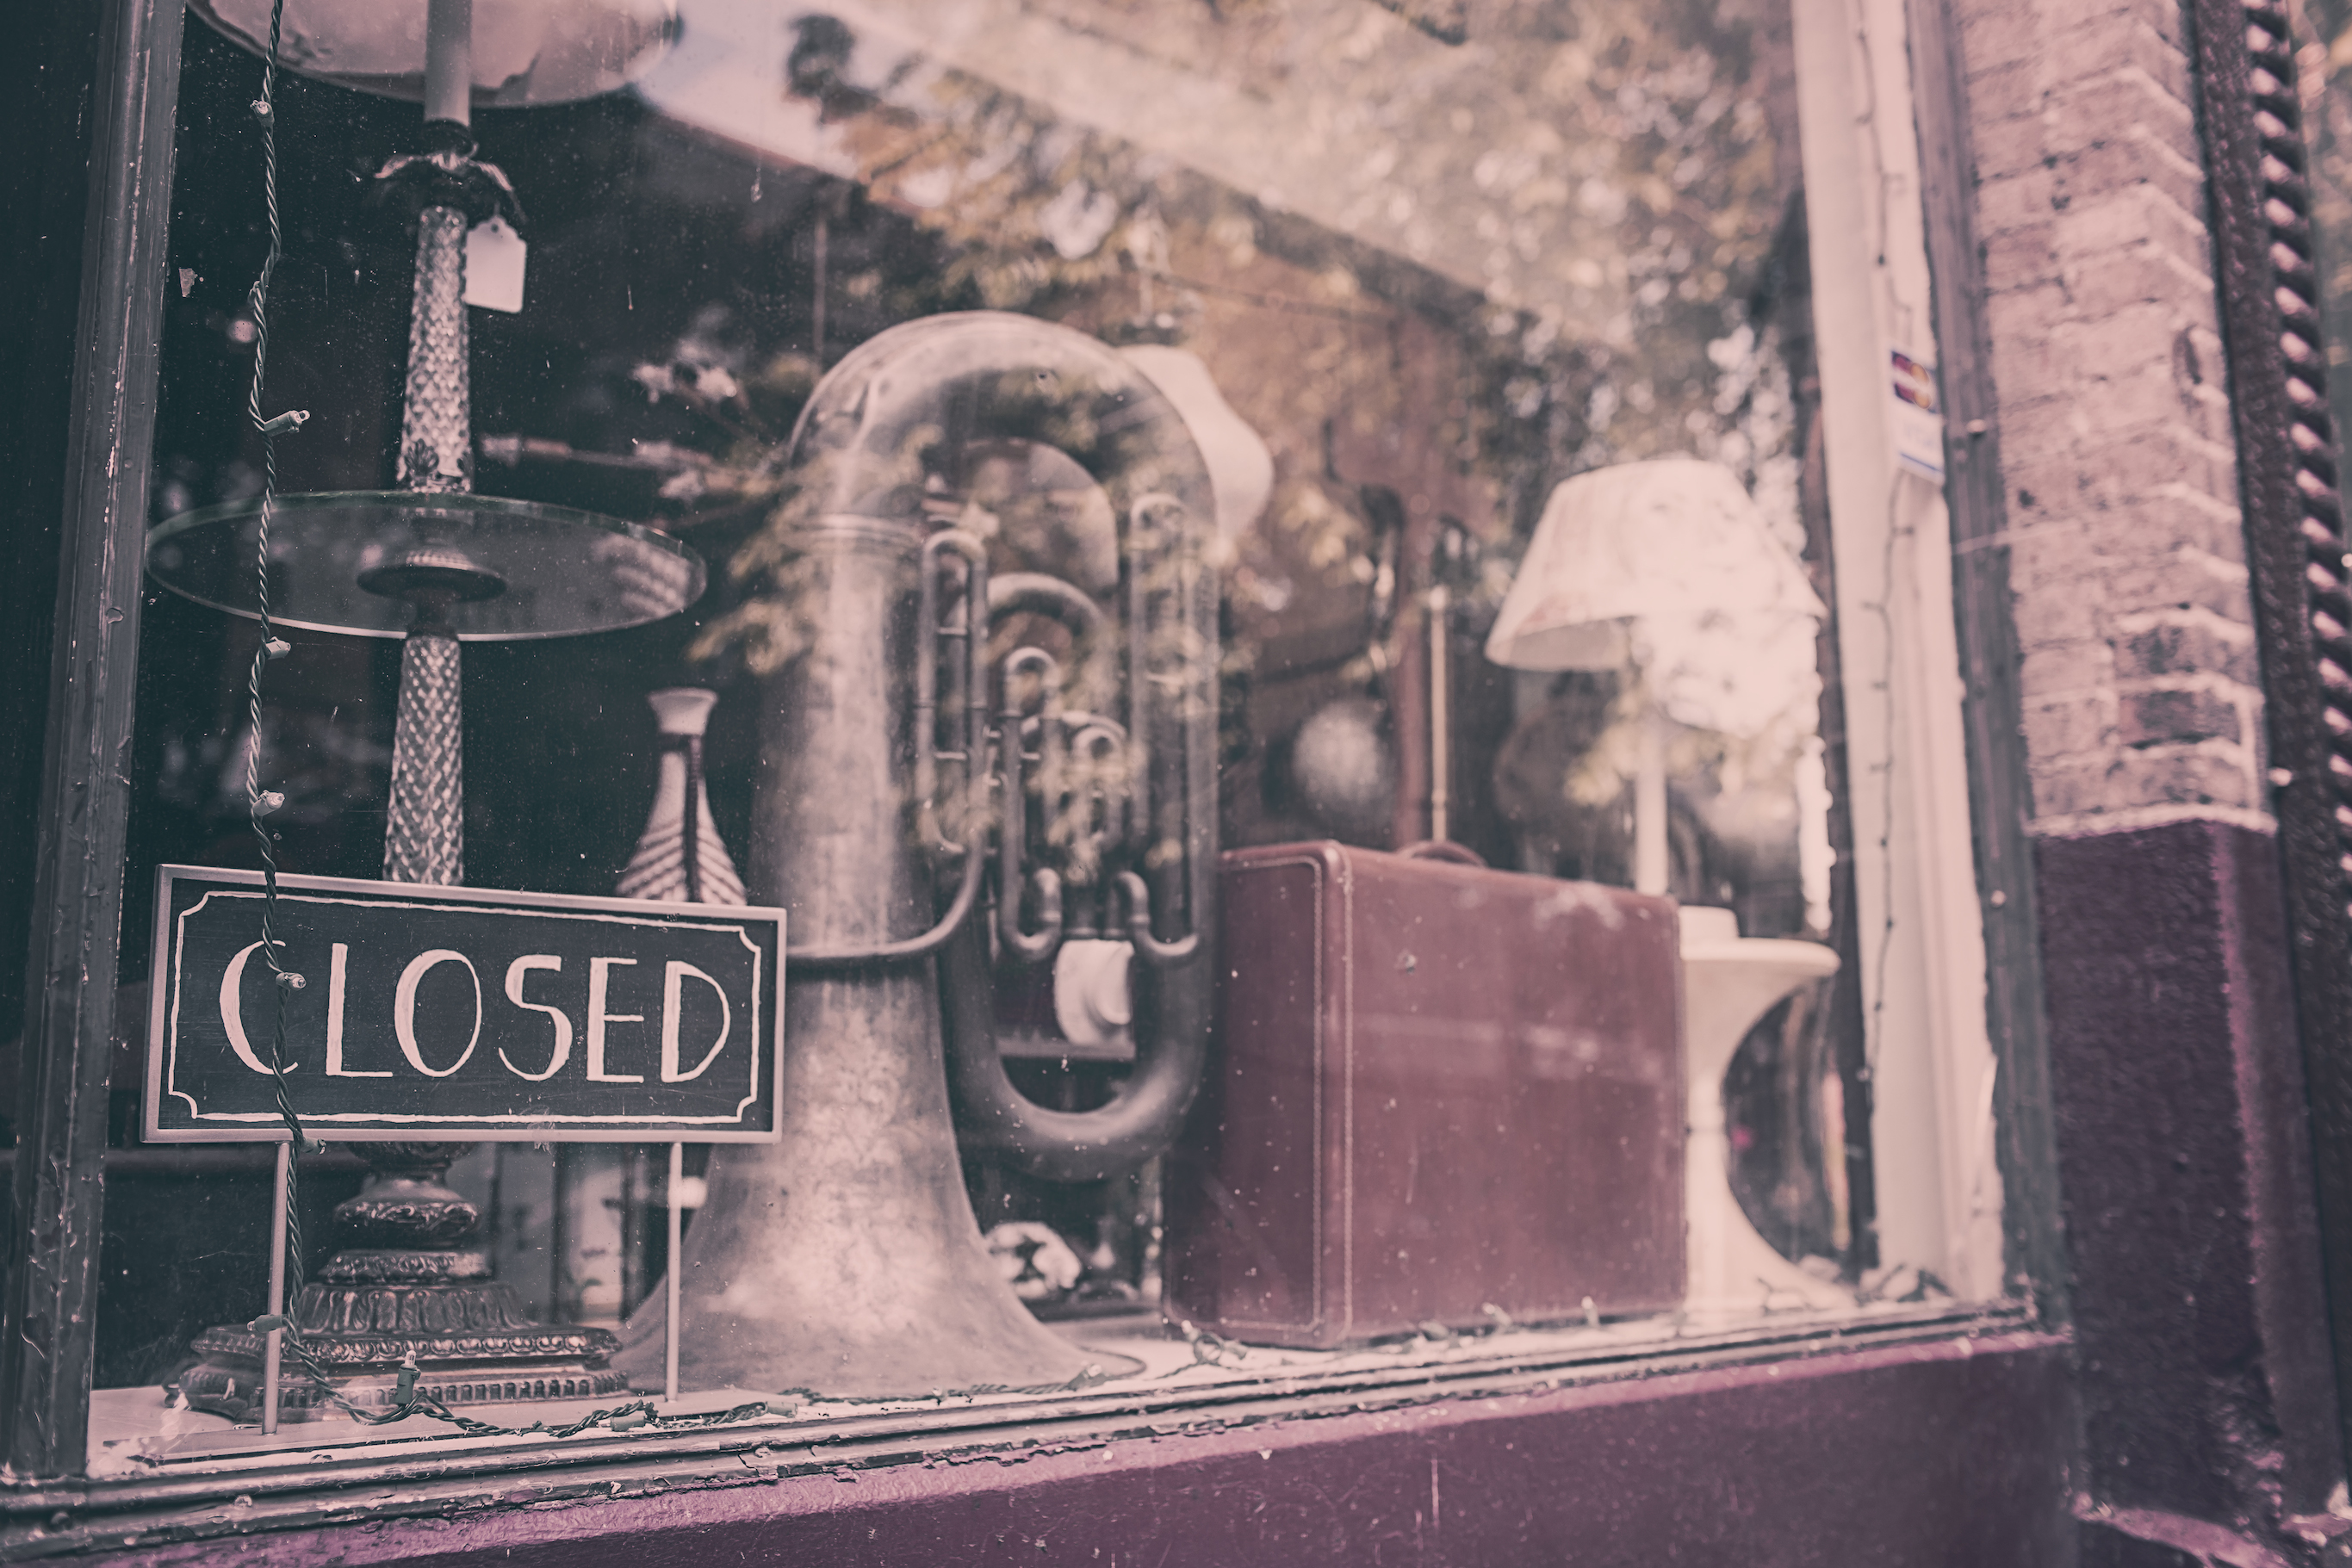 old, dusty store front